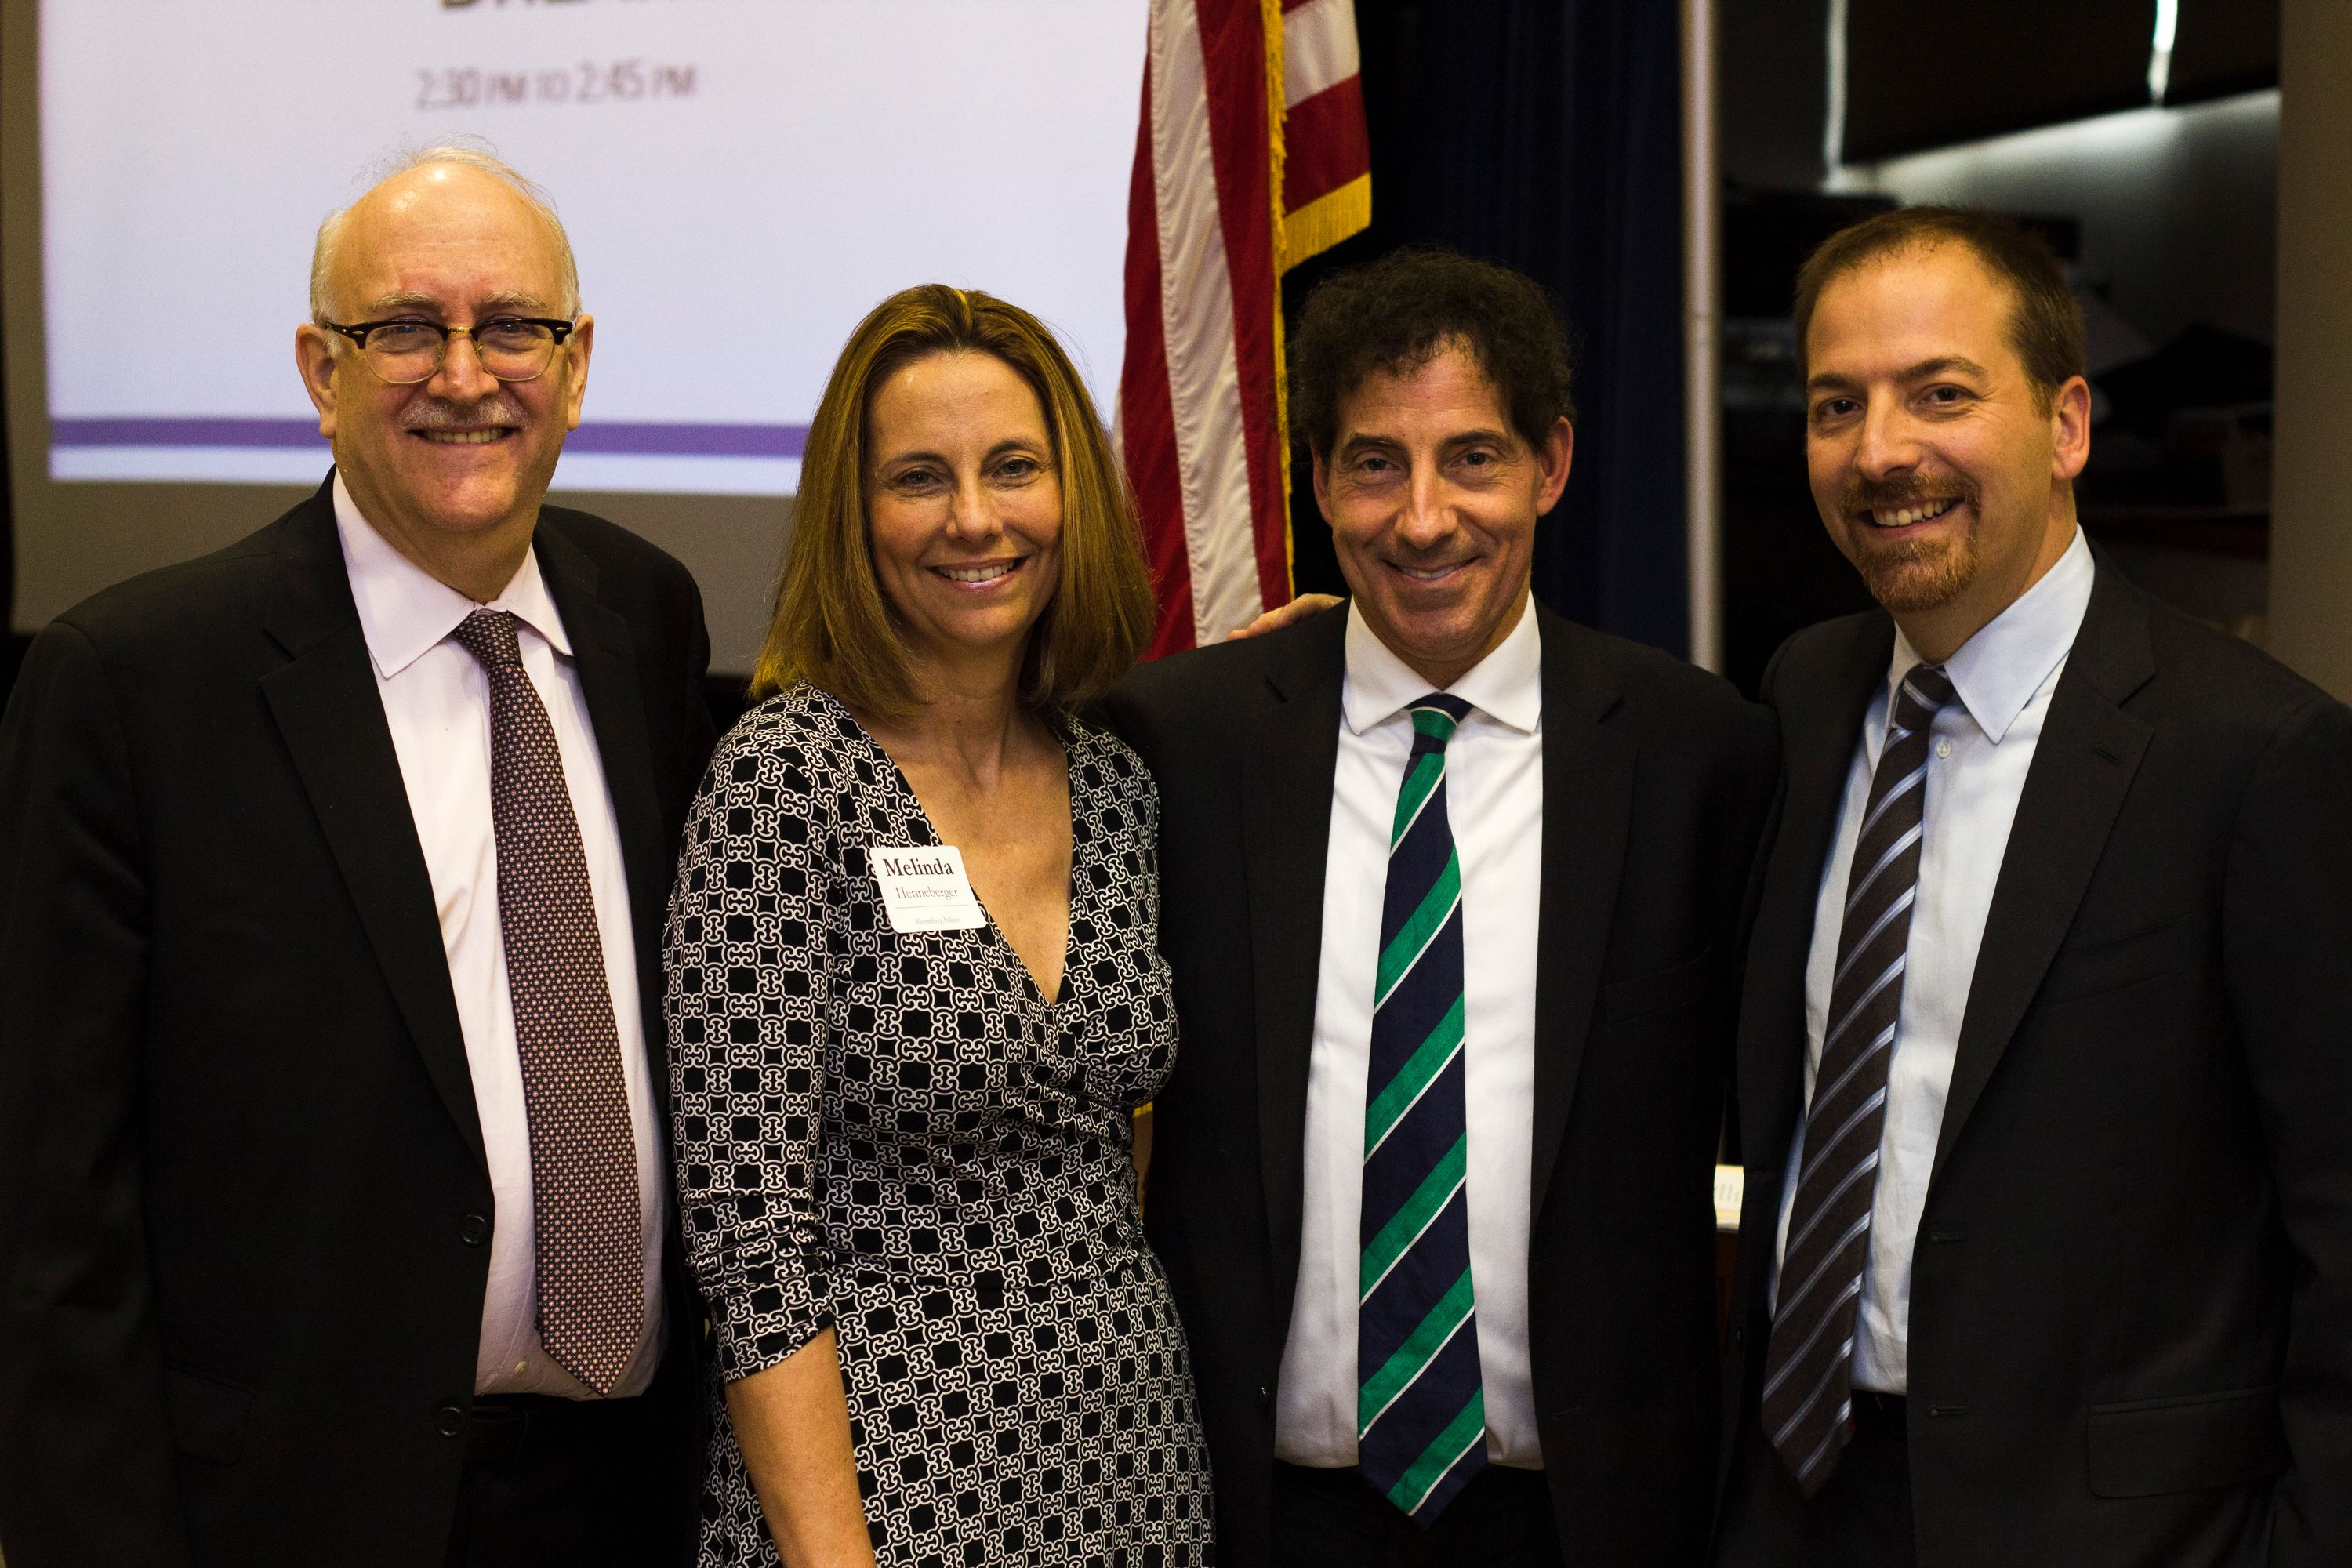 Harry Kresky, Melinda Henneberger, Jamie Raskin and Chuck Todd